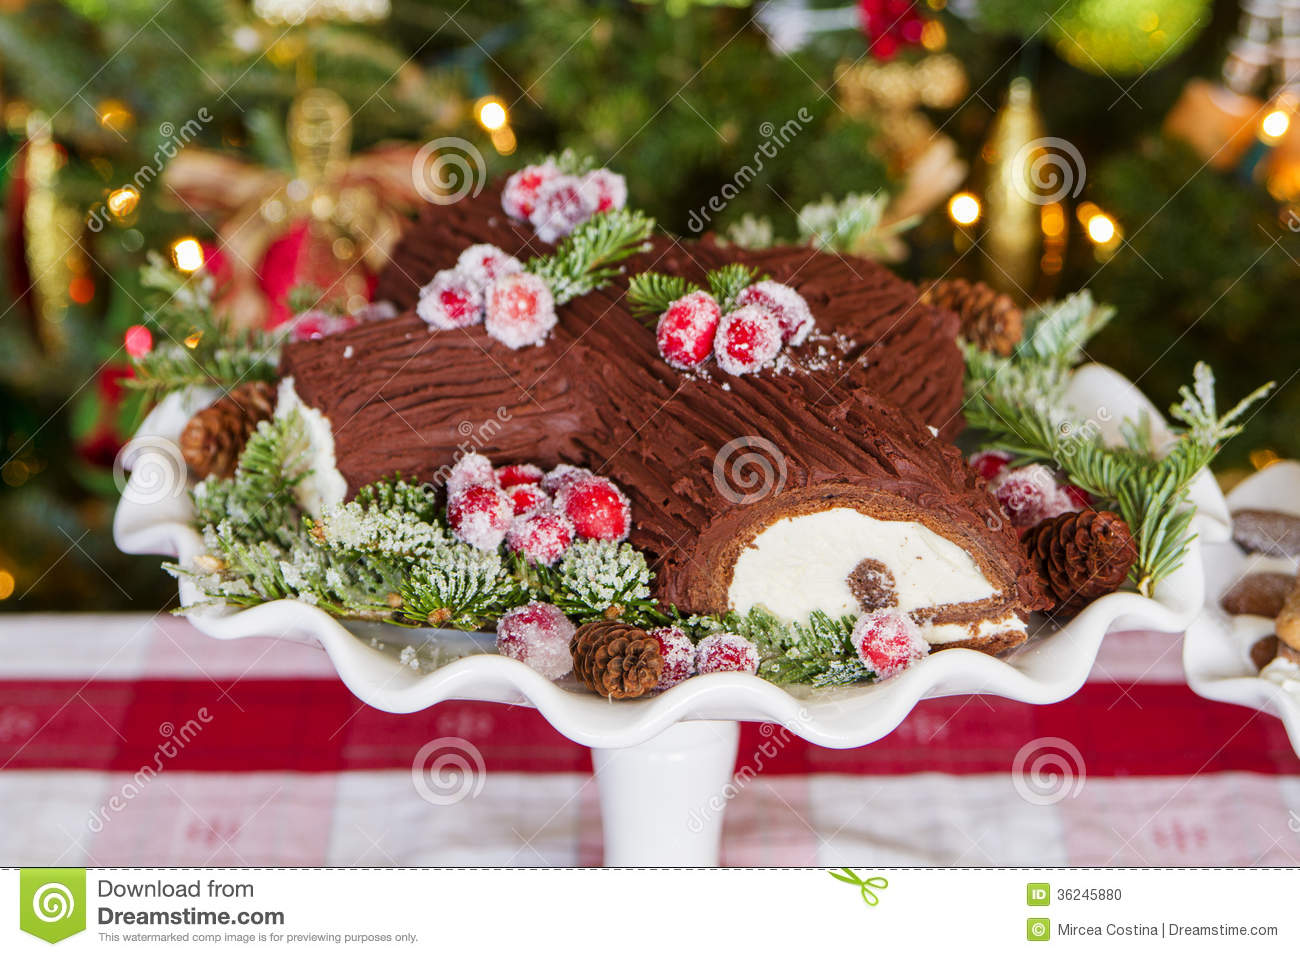 buche de noel cake stock photo image of display hungry 36245880. Black Bedroom Furniture Sets. Home Design Ideas